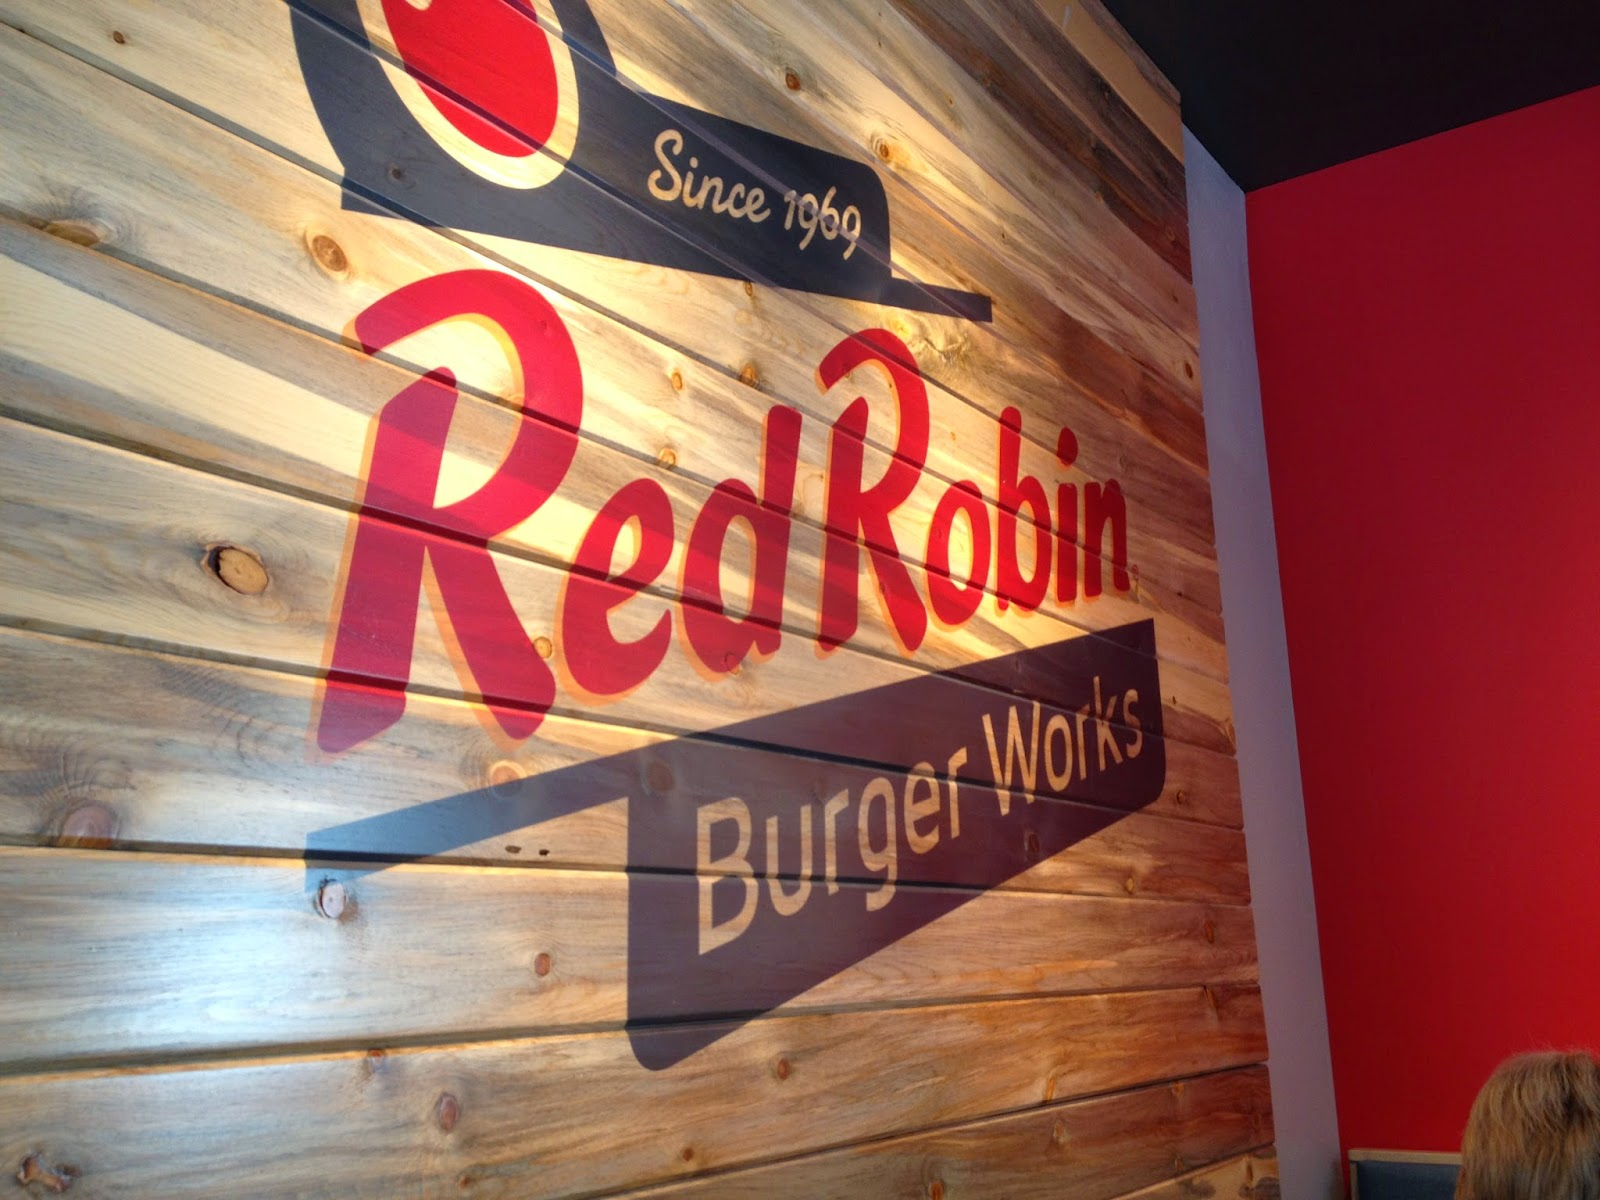 Familiar Elements Of The Red Robin Decor Have Been Brought In To Burger Works Locations